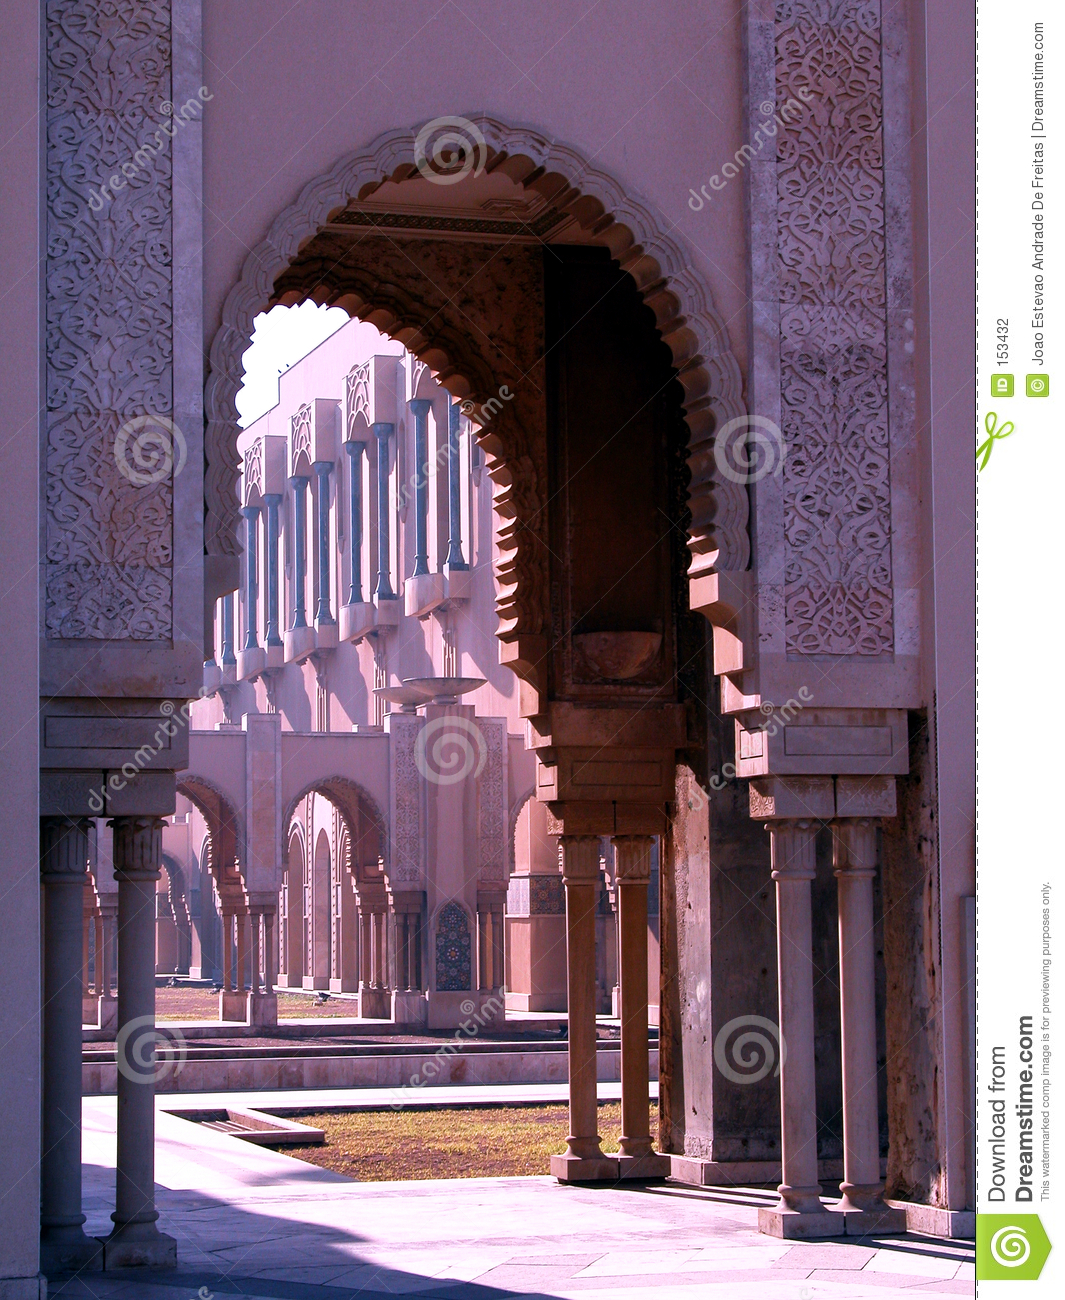 Arab architecture stock photography image 153432 for Architecture arabe